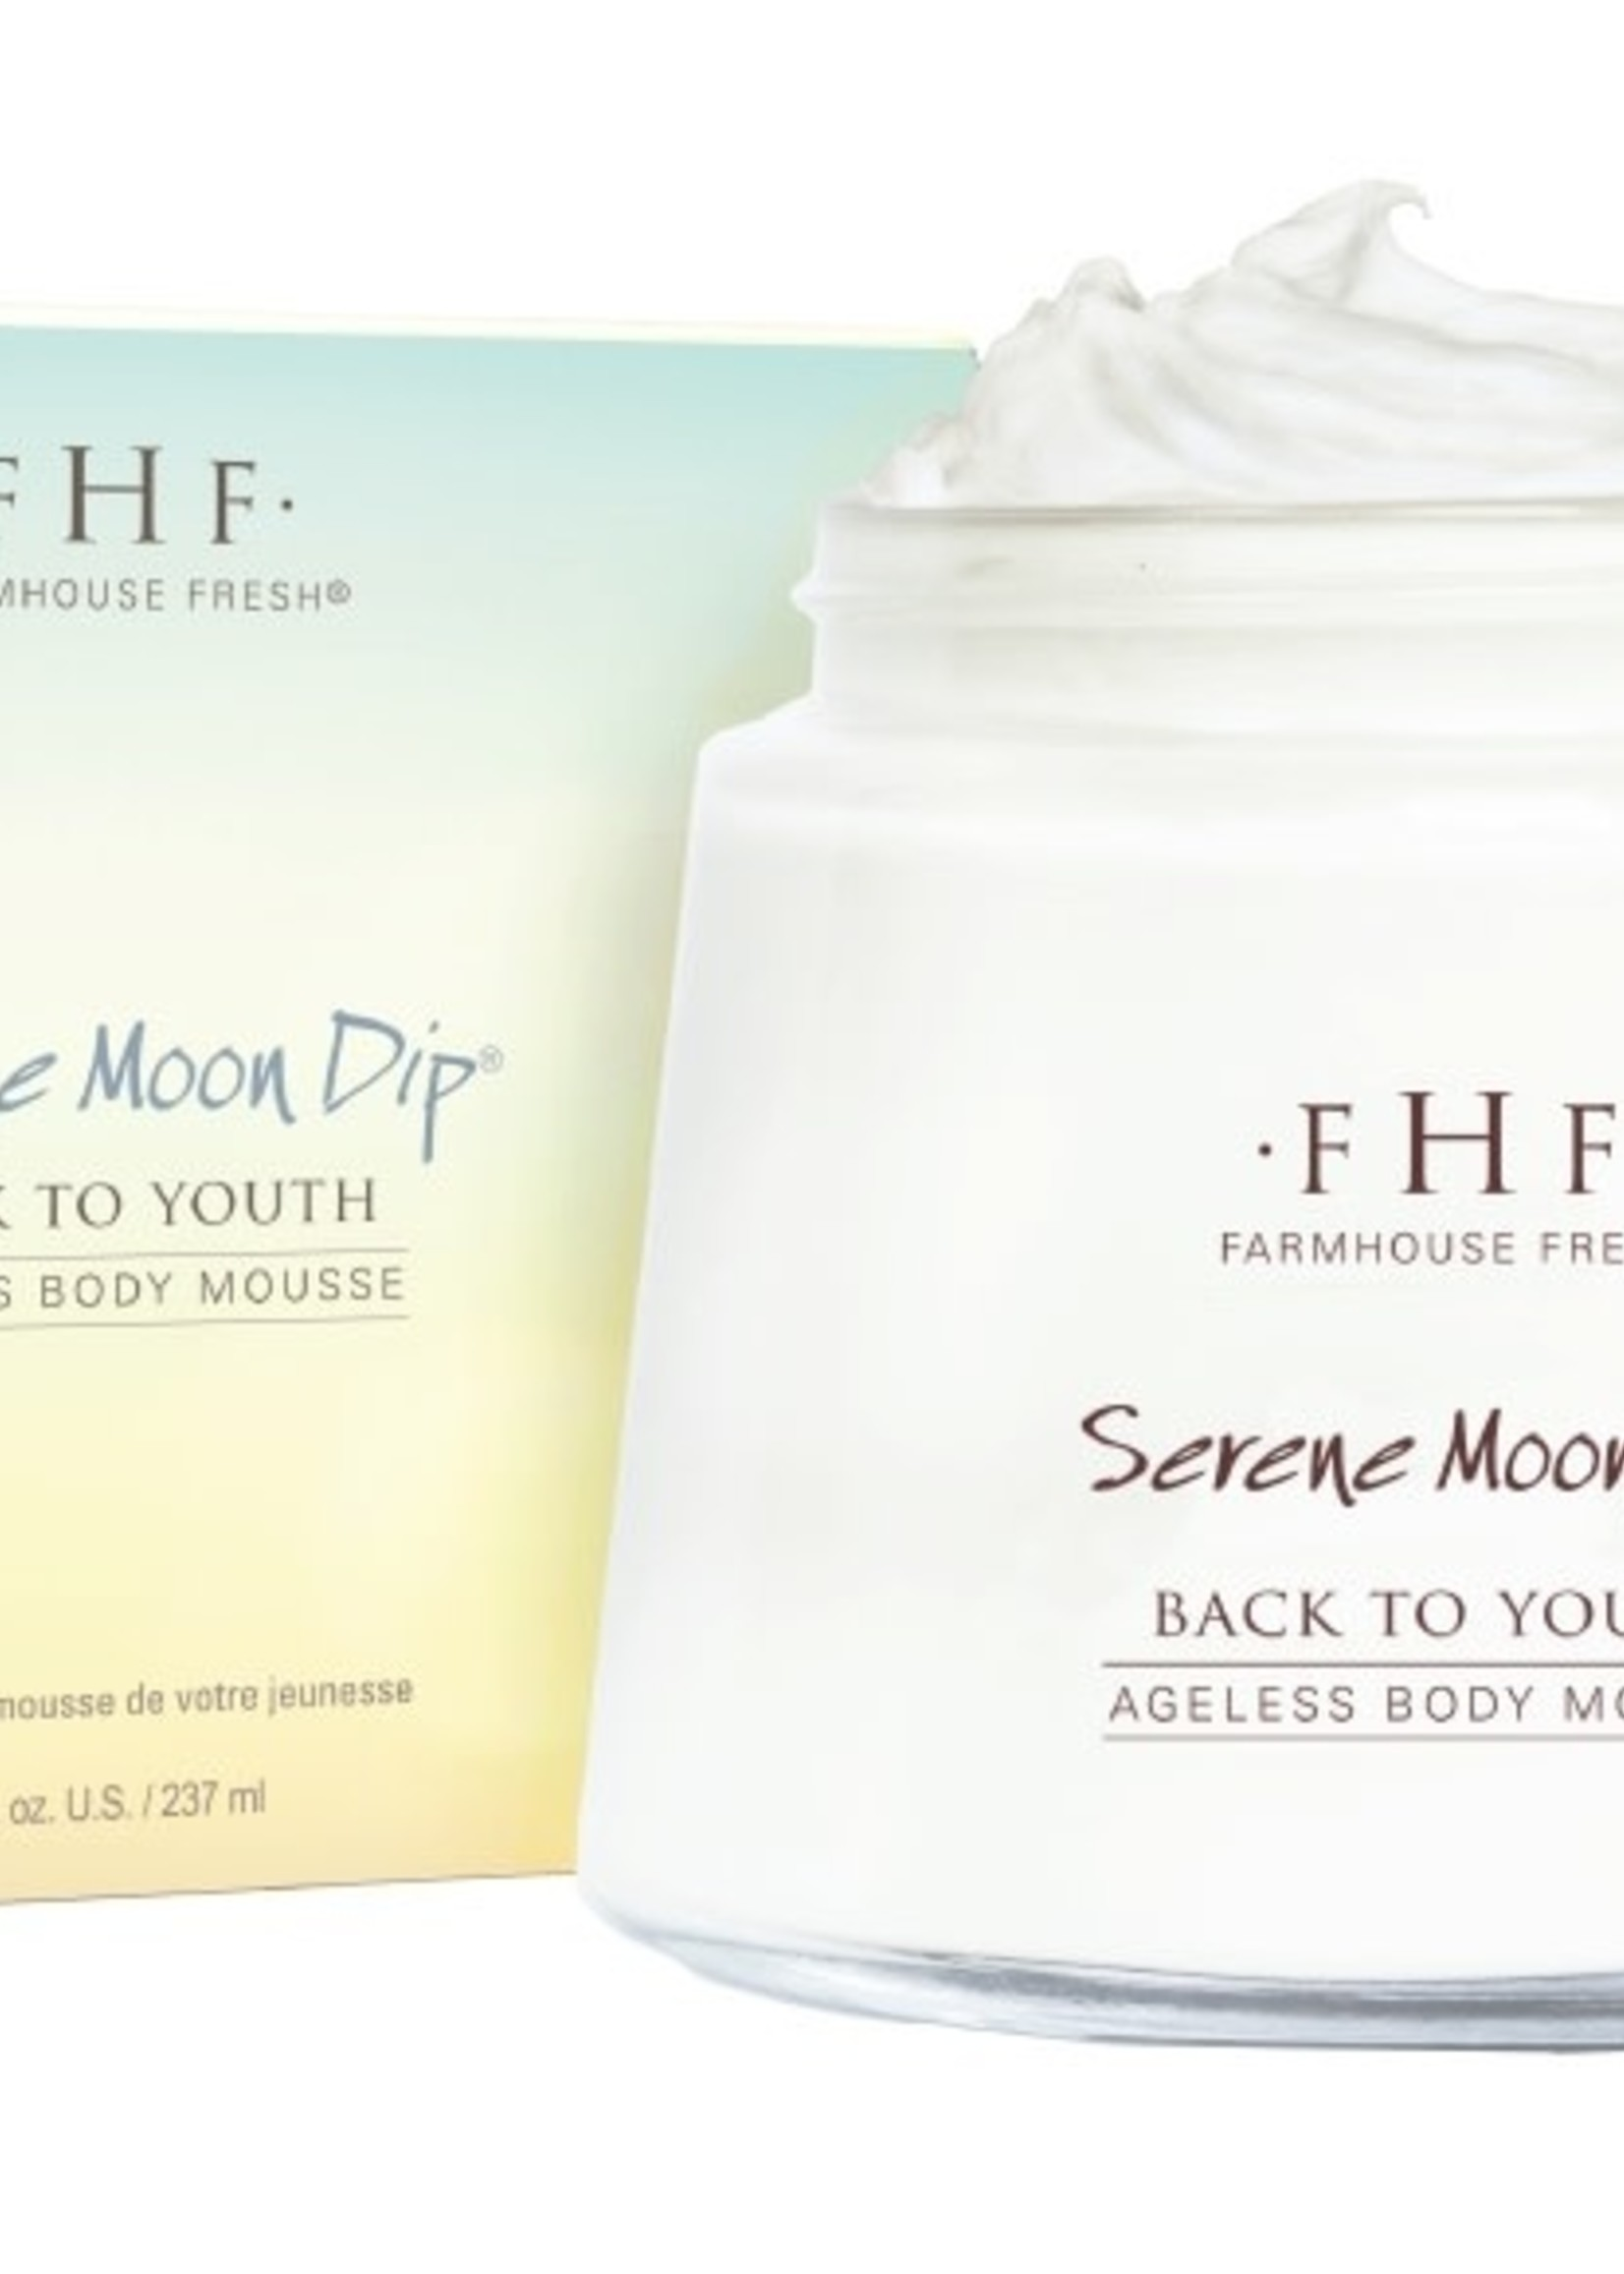 Back to Youth Body Mousse